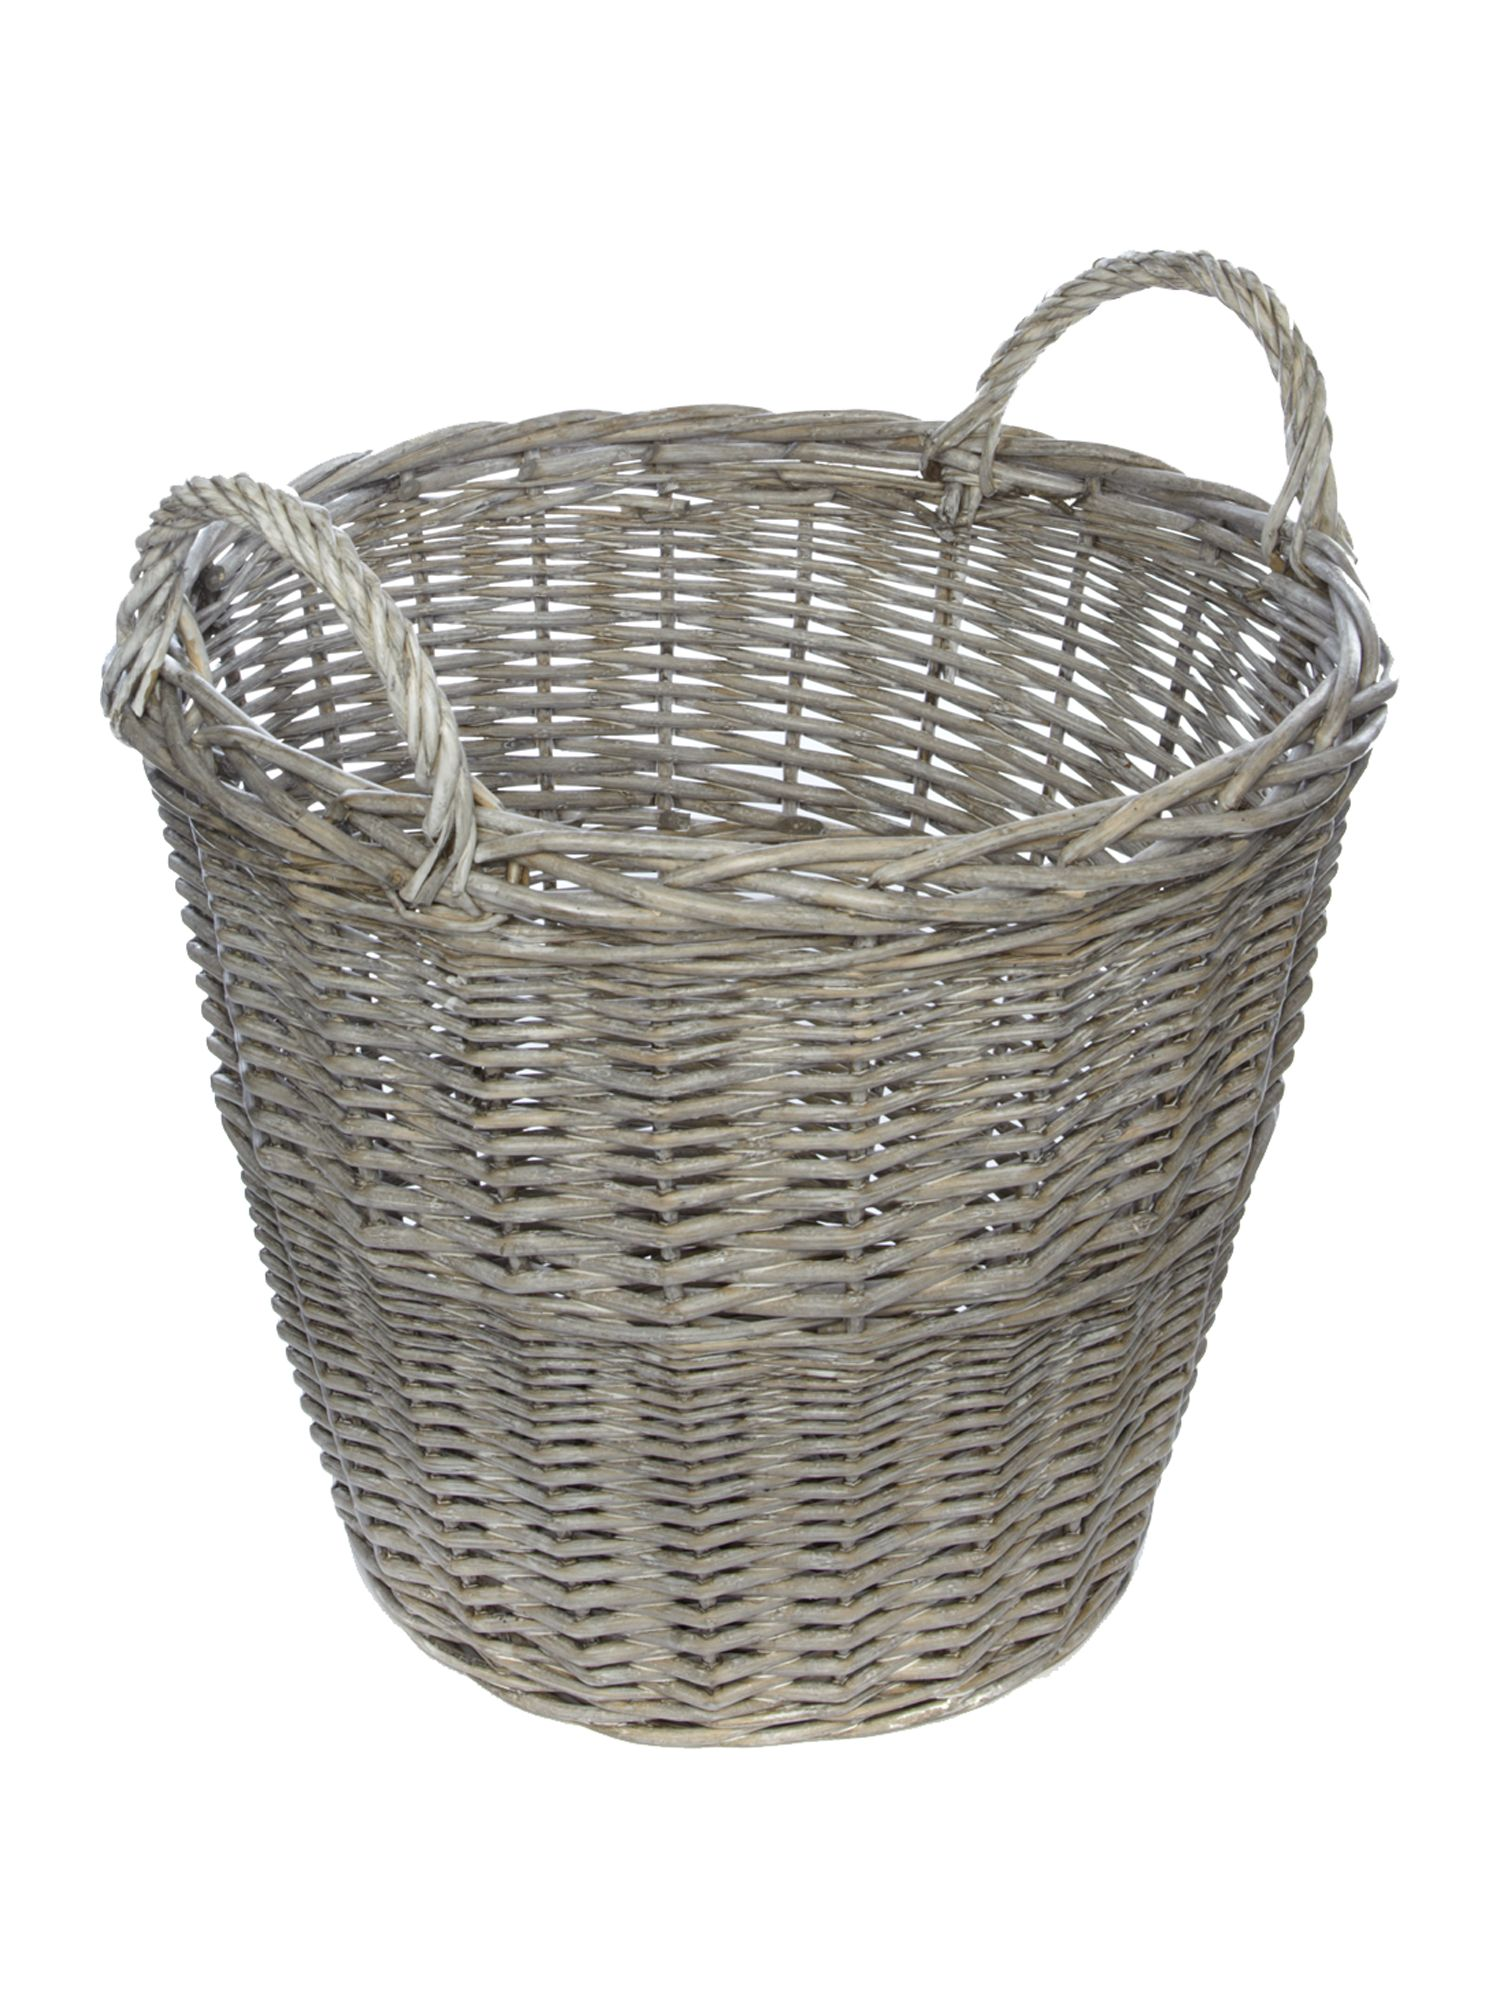 Whitewashed willow basket with handles